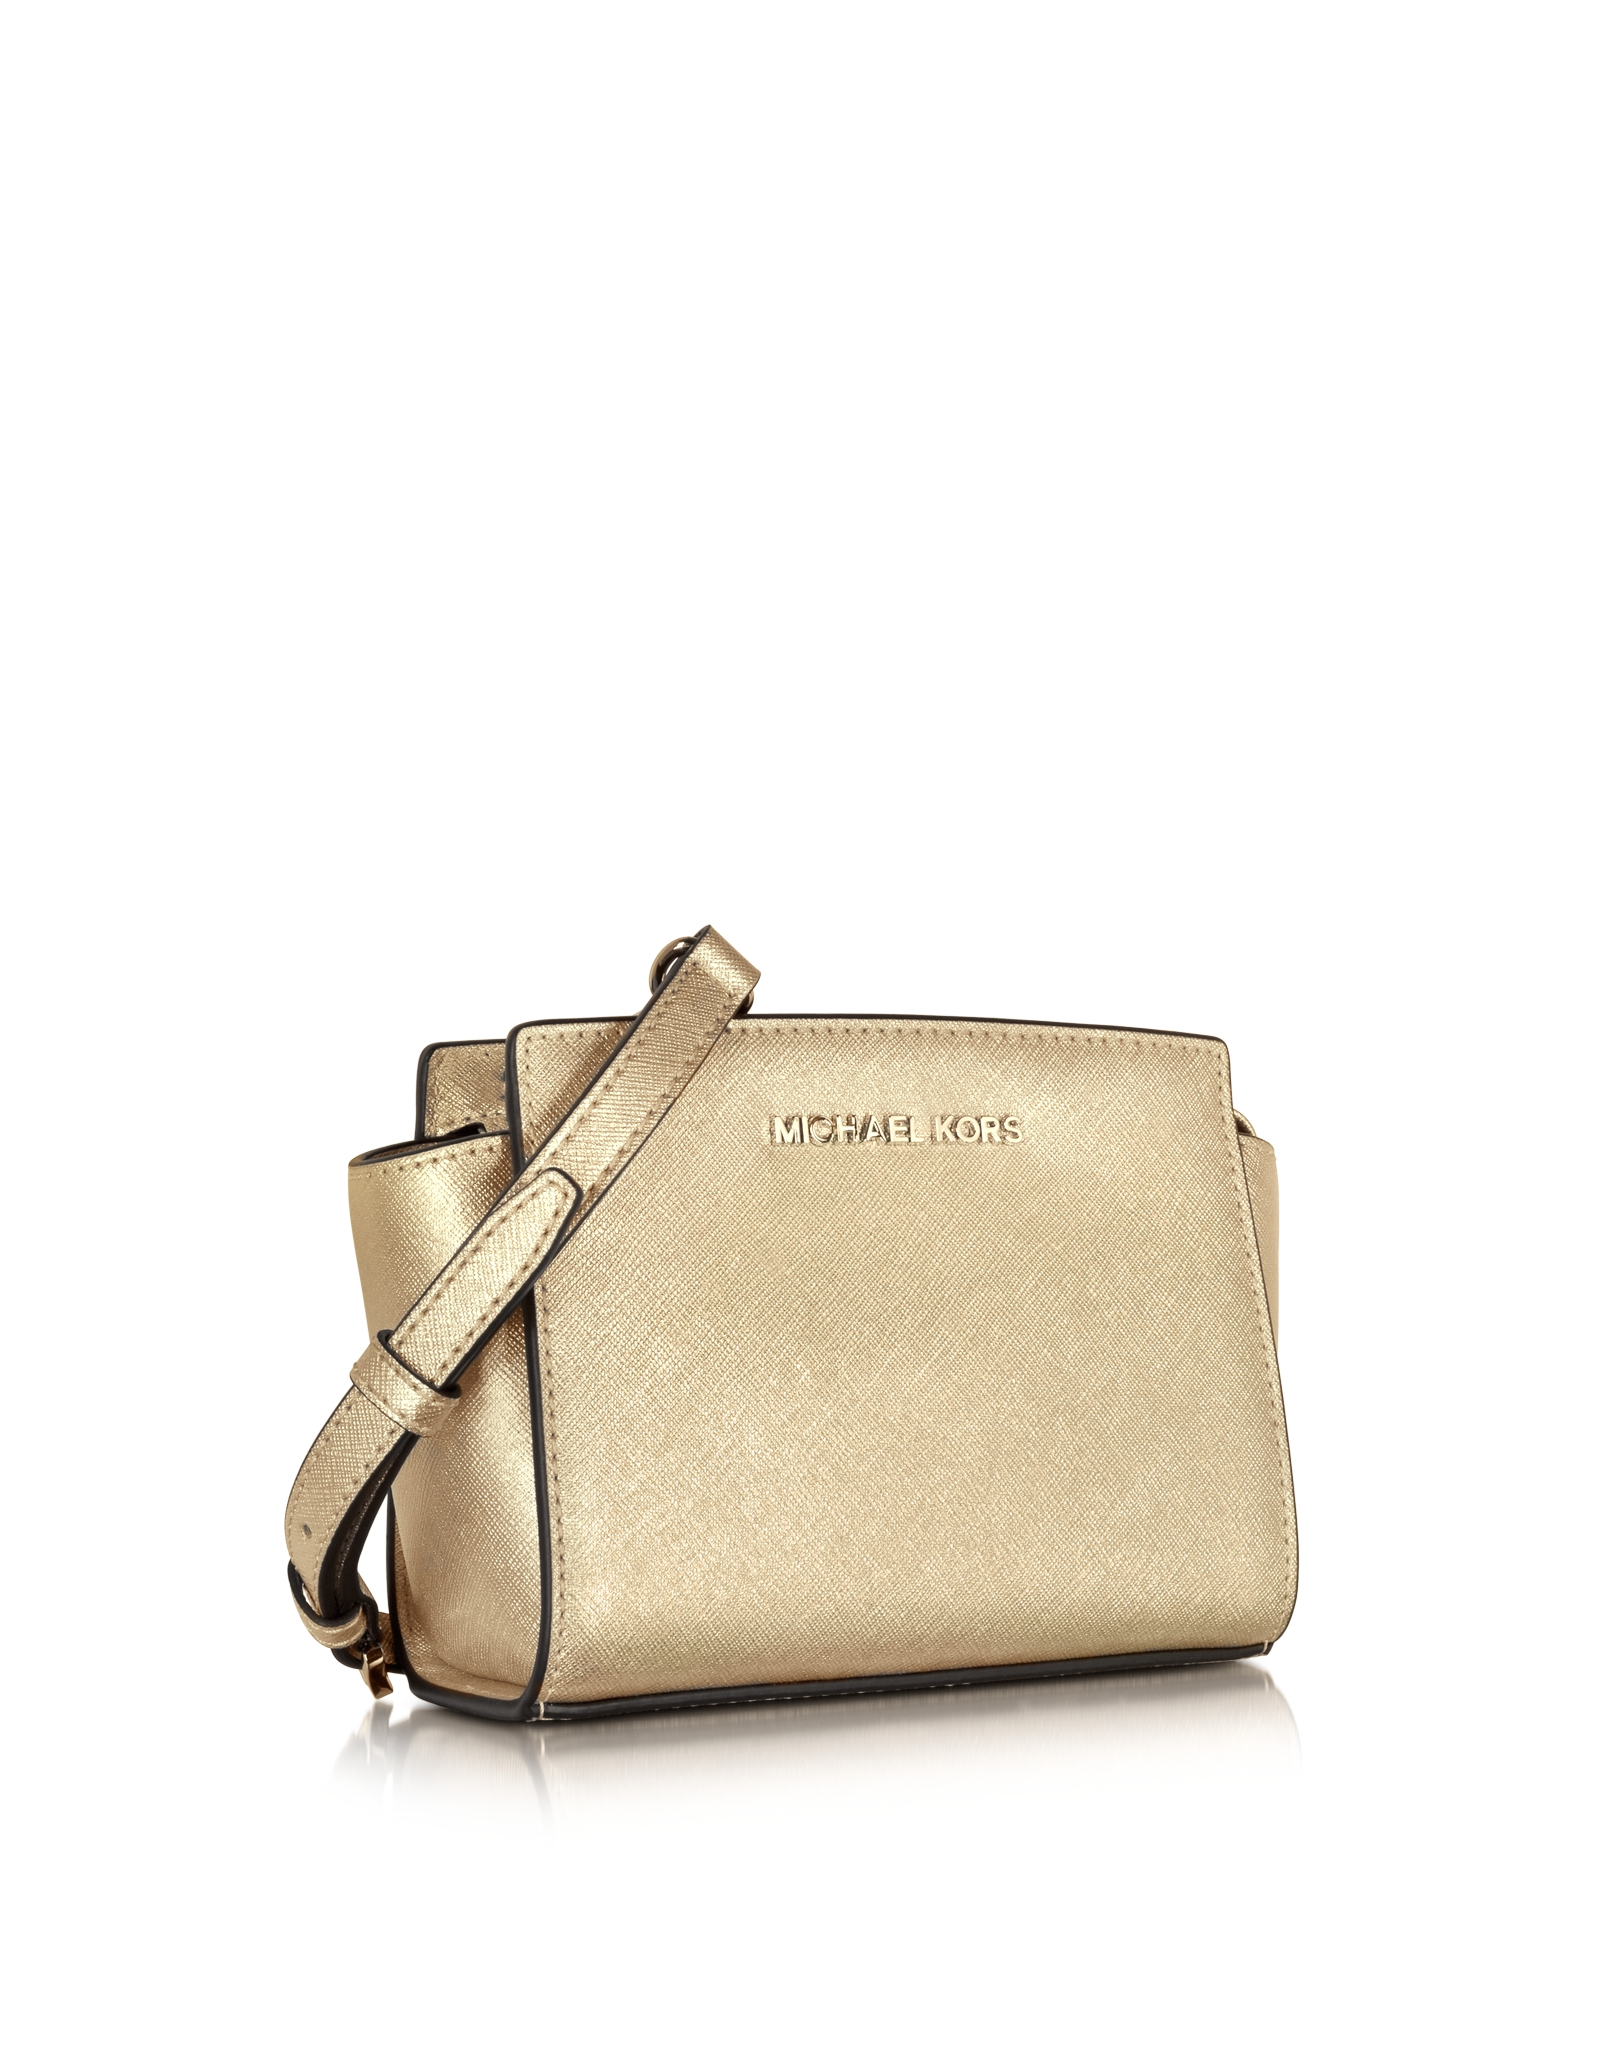 bcca14935754 ... promo code lyst michael kors pale gold metallic saffiano leather selma  mini messenger bag in metallic